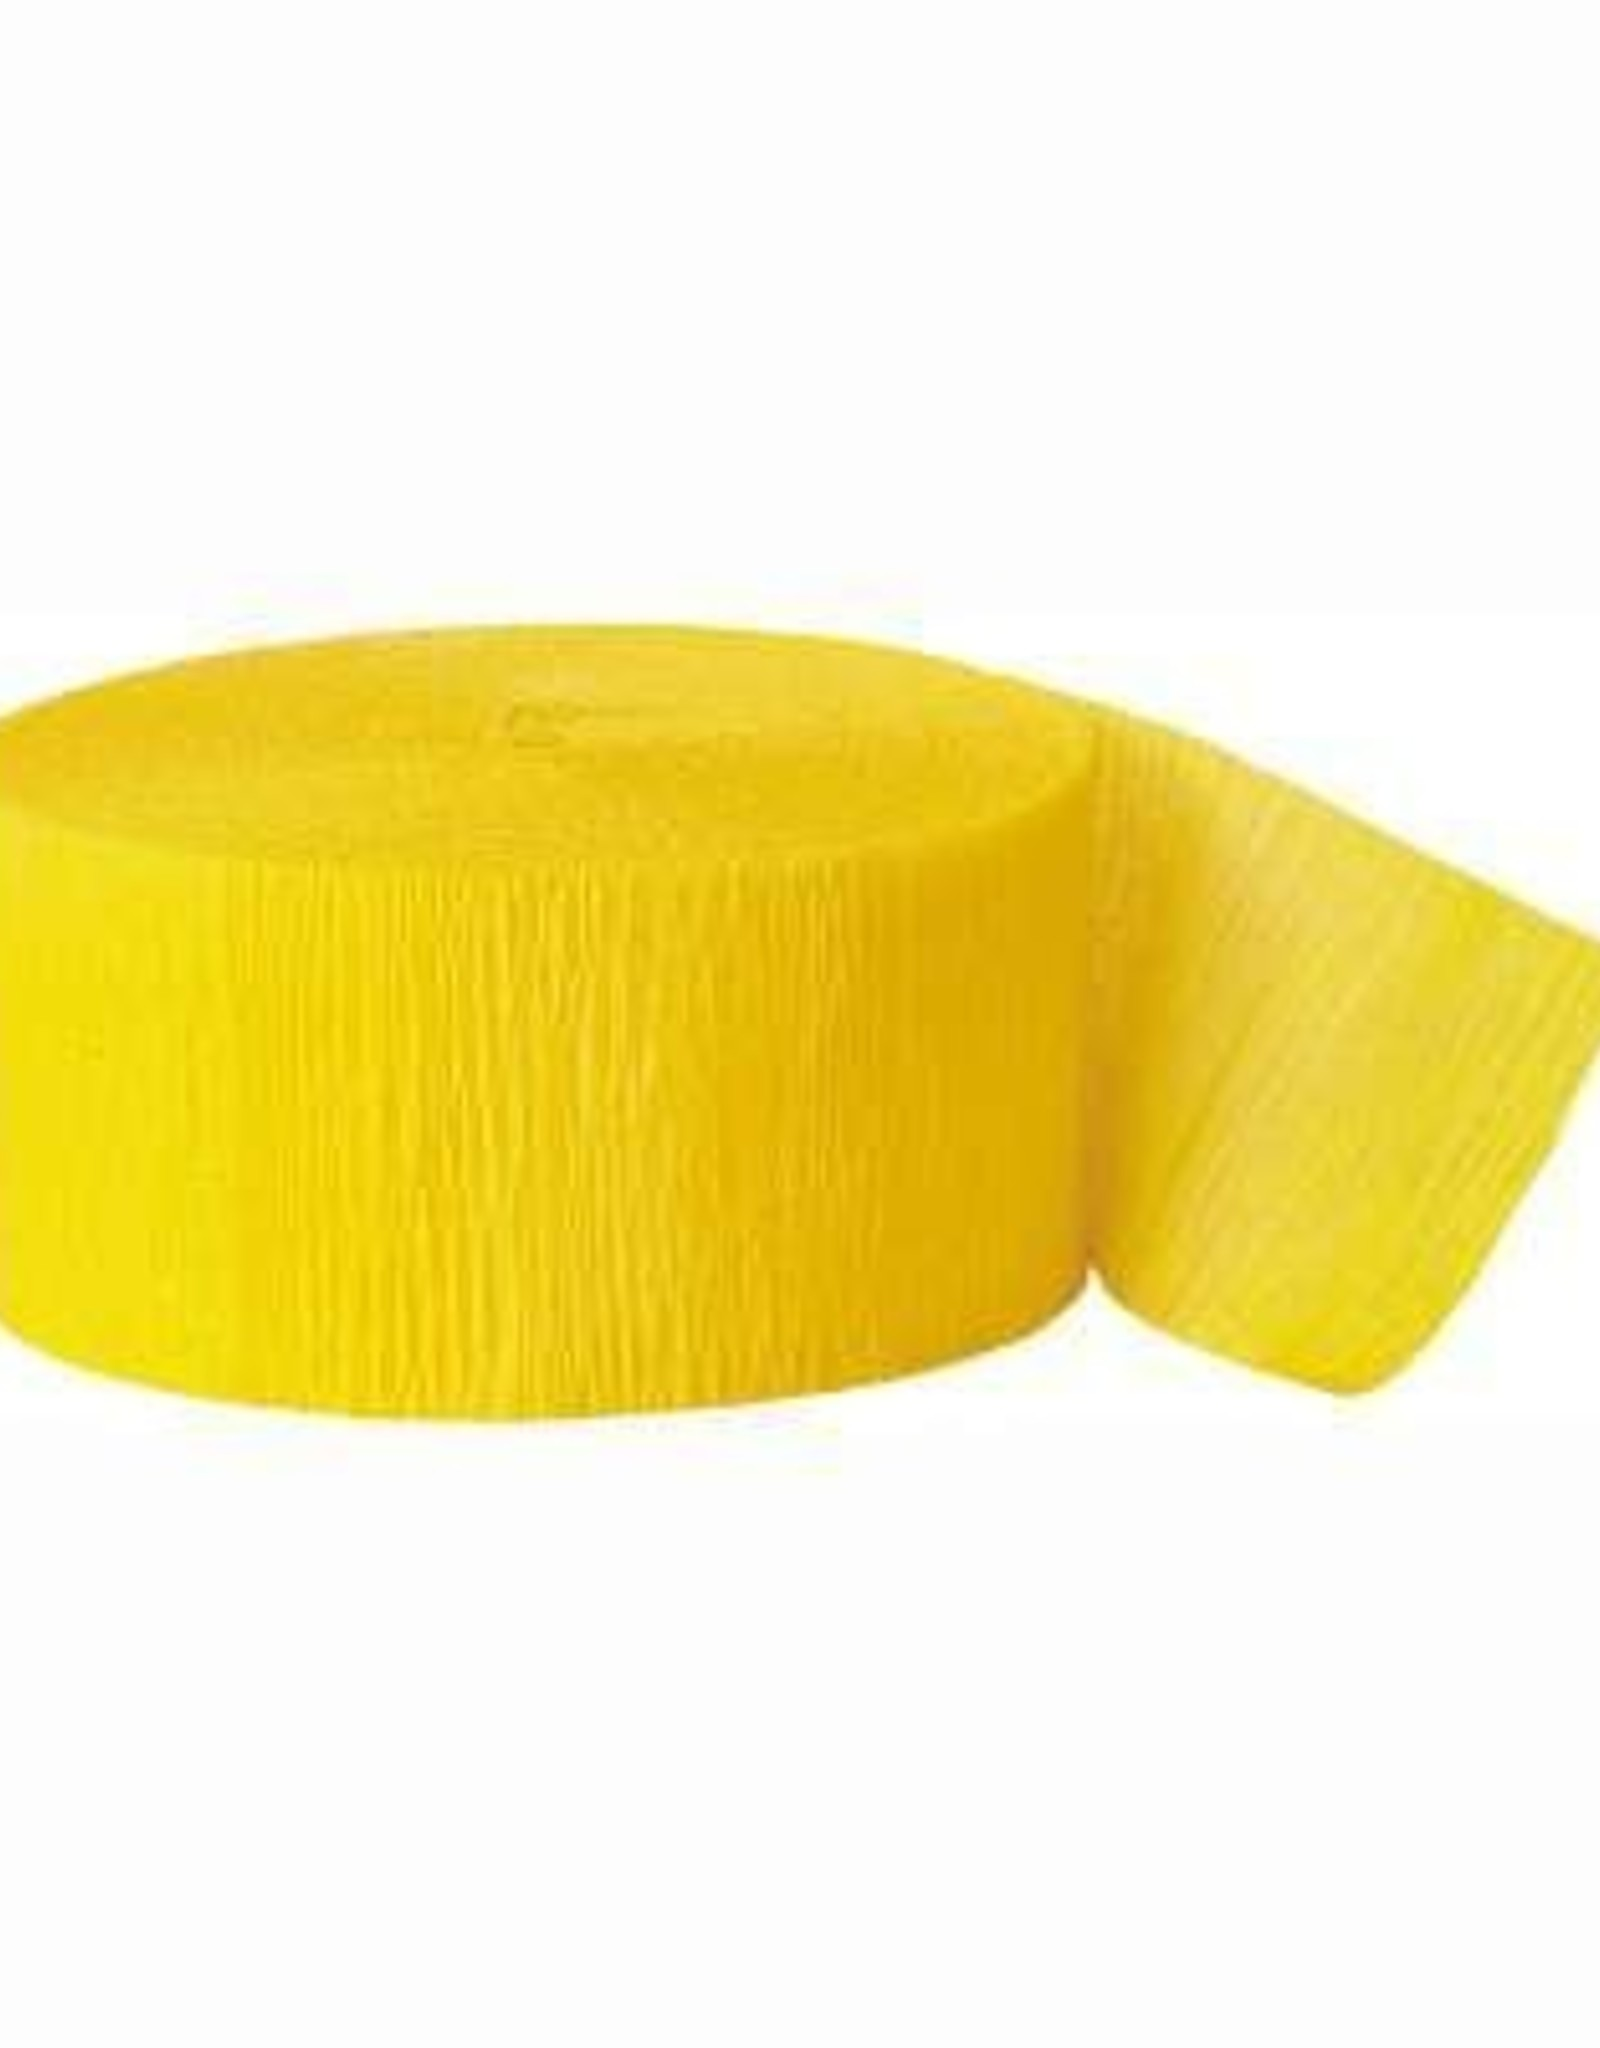 Hot Yellow Streamers 81FT